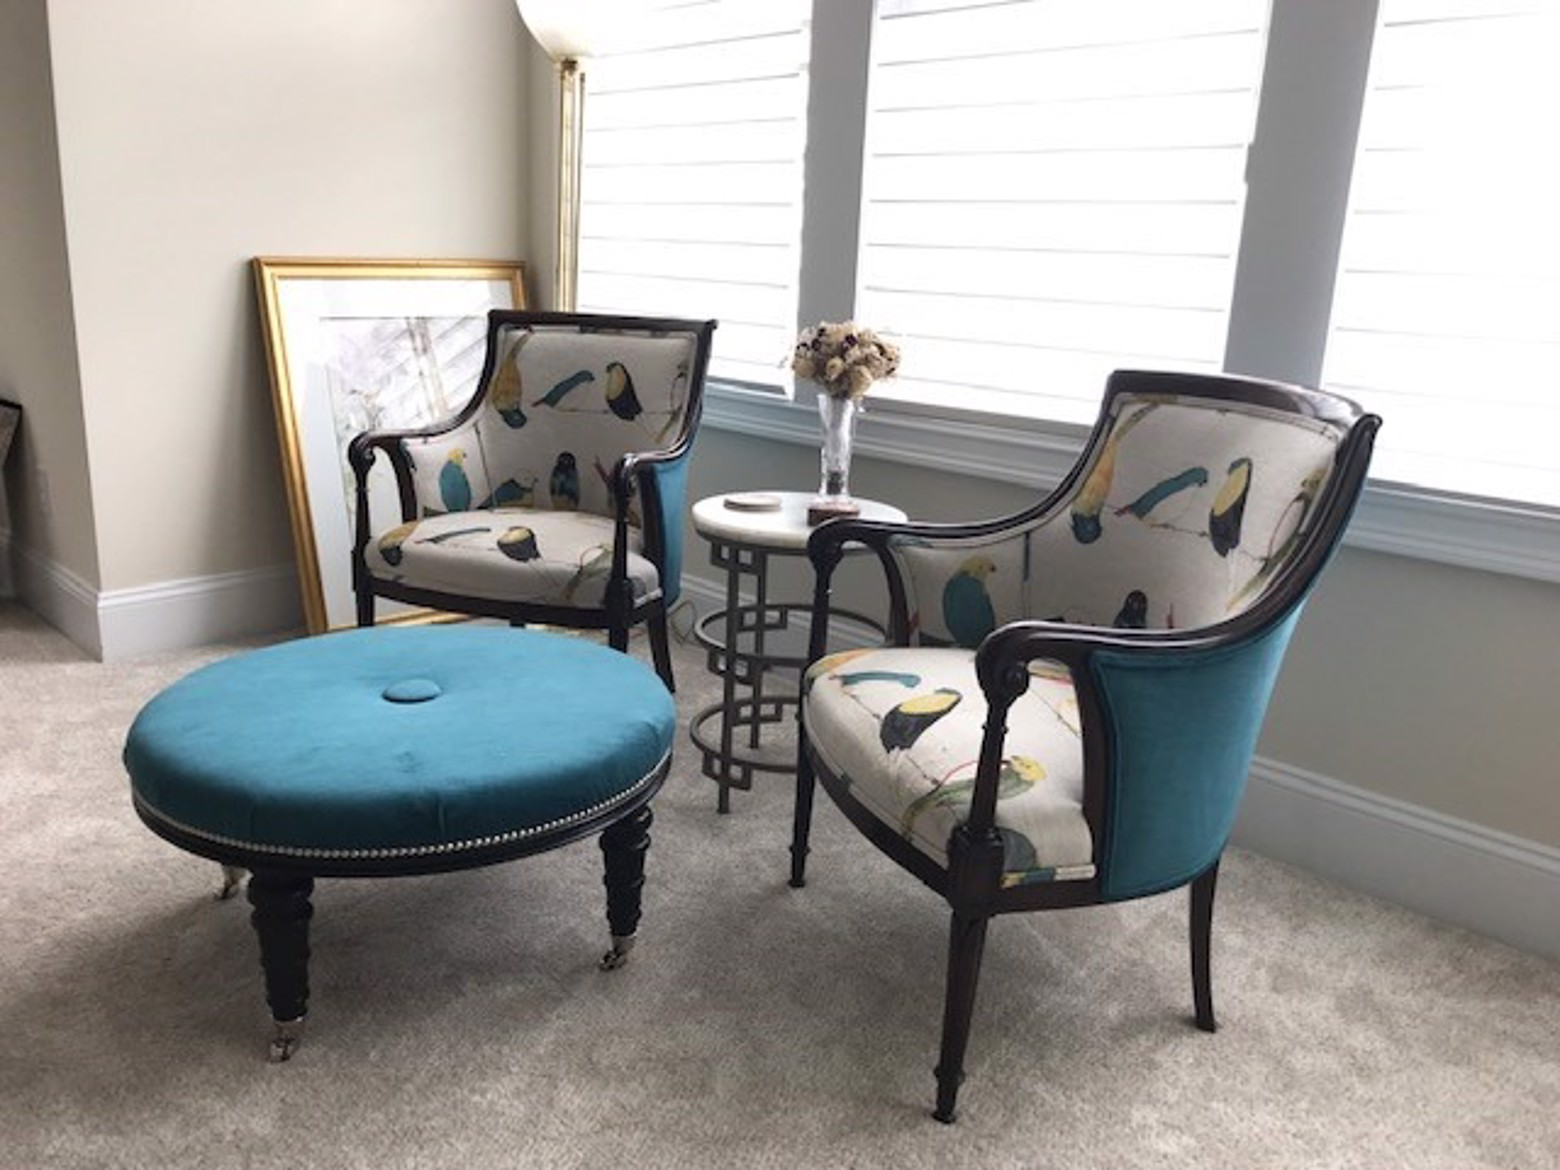 upholstered chairs and ottoman.jpg image